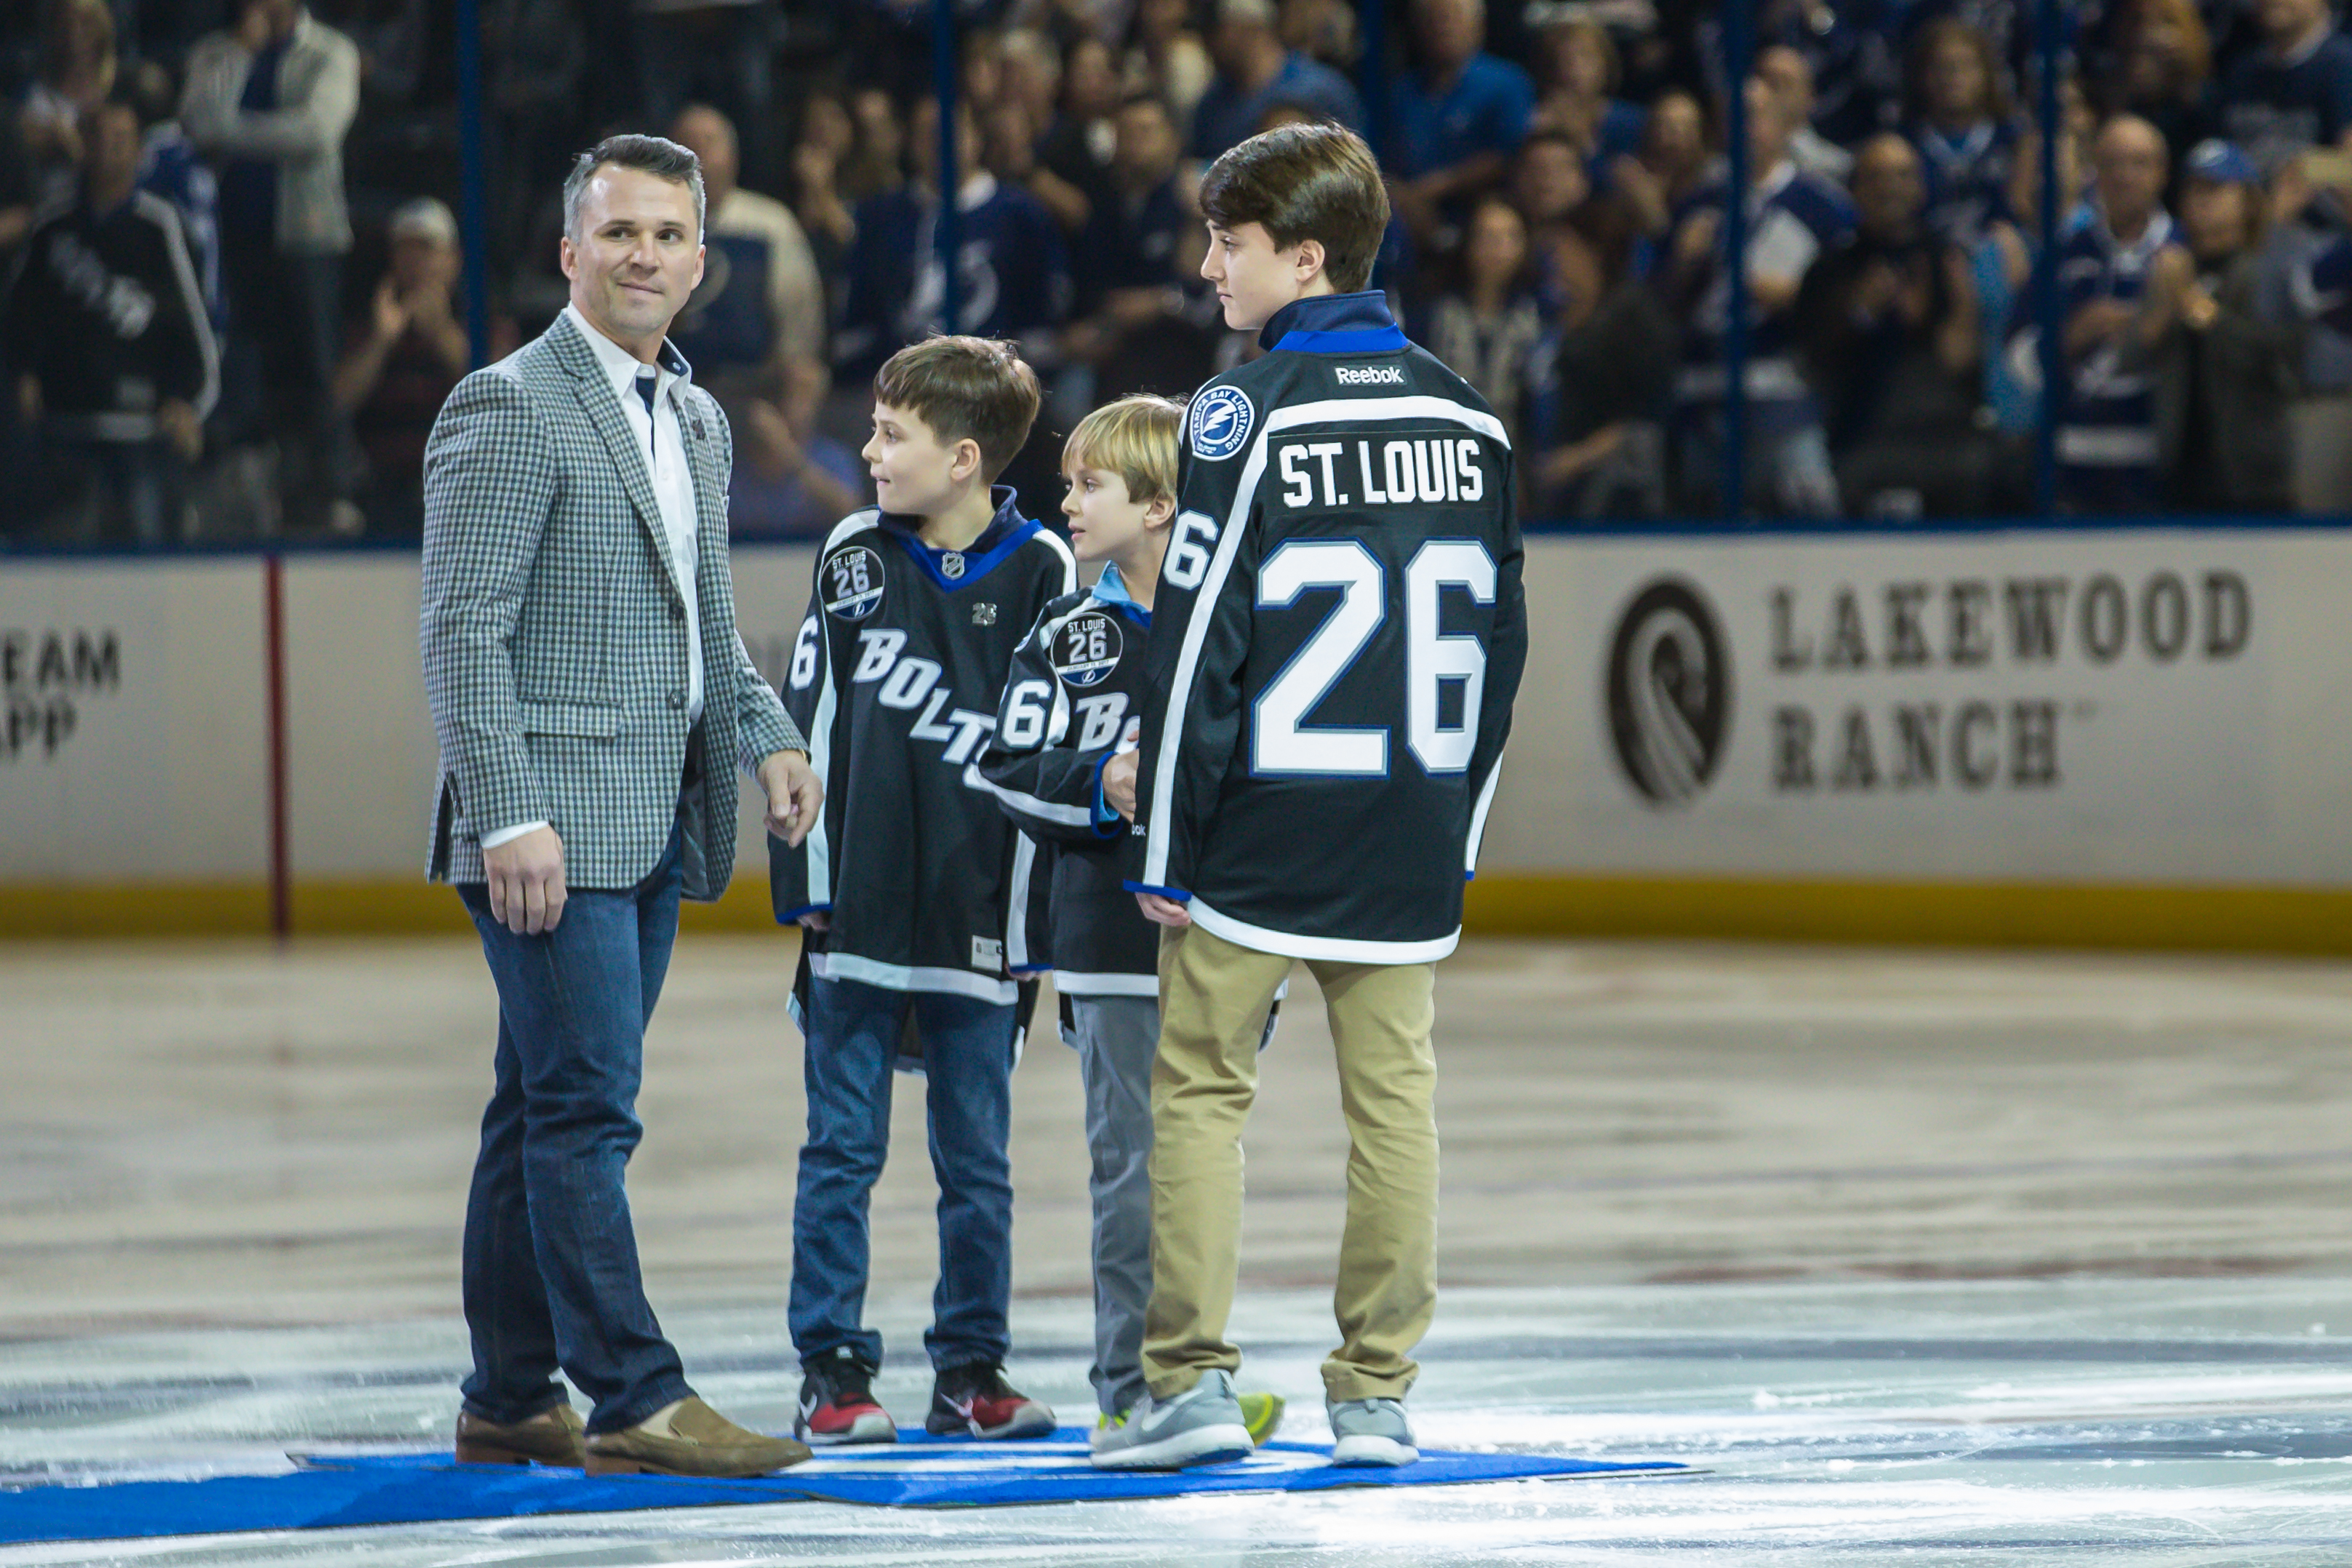 St. Louis and his three sons drop the puck for the Bolts./TRAVIS PENDERGRASS